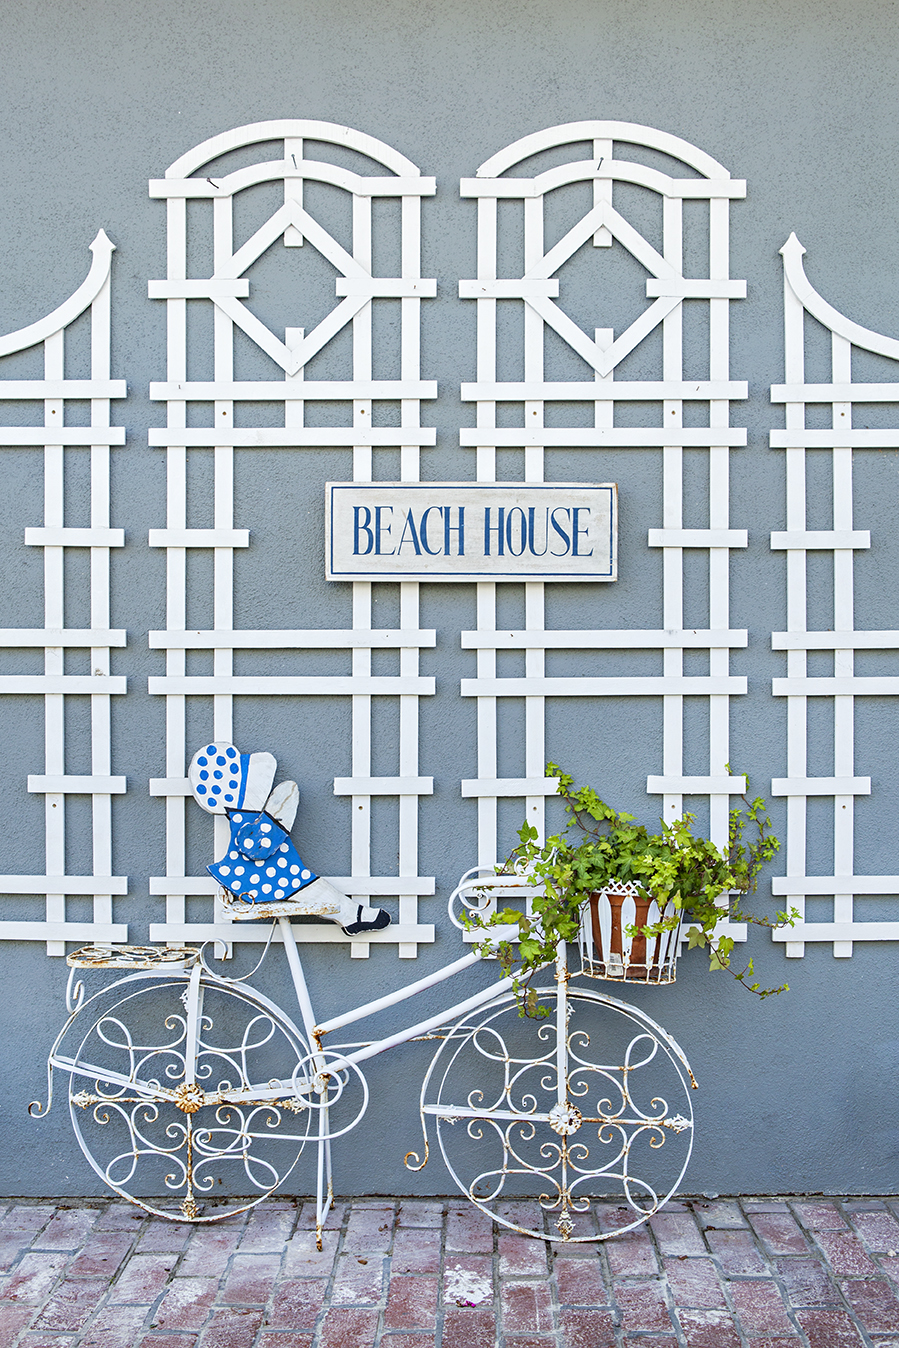 A blue exterior wall juxtaposed to a brick sidewalk with a rod iron decorative bicycle leaned against a white lattice design.